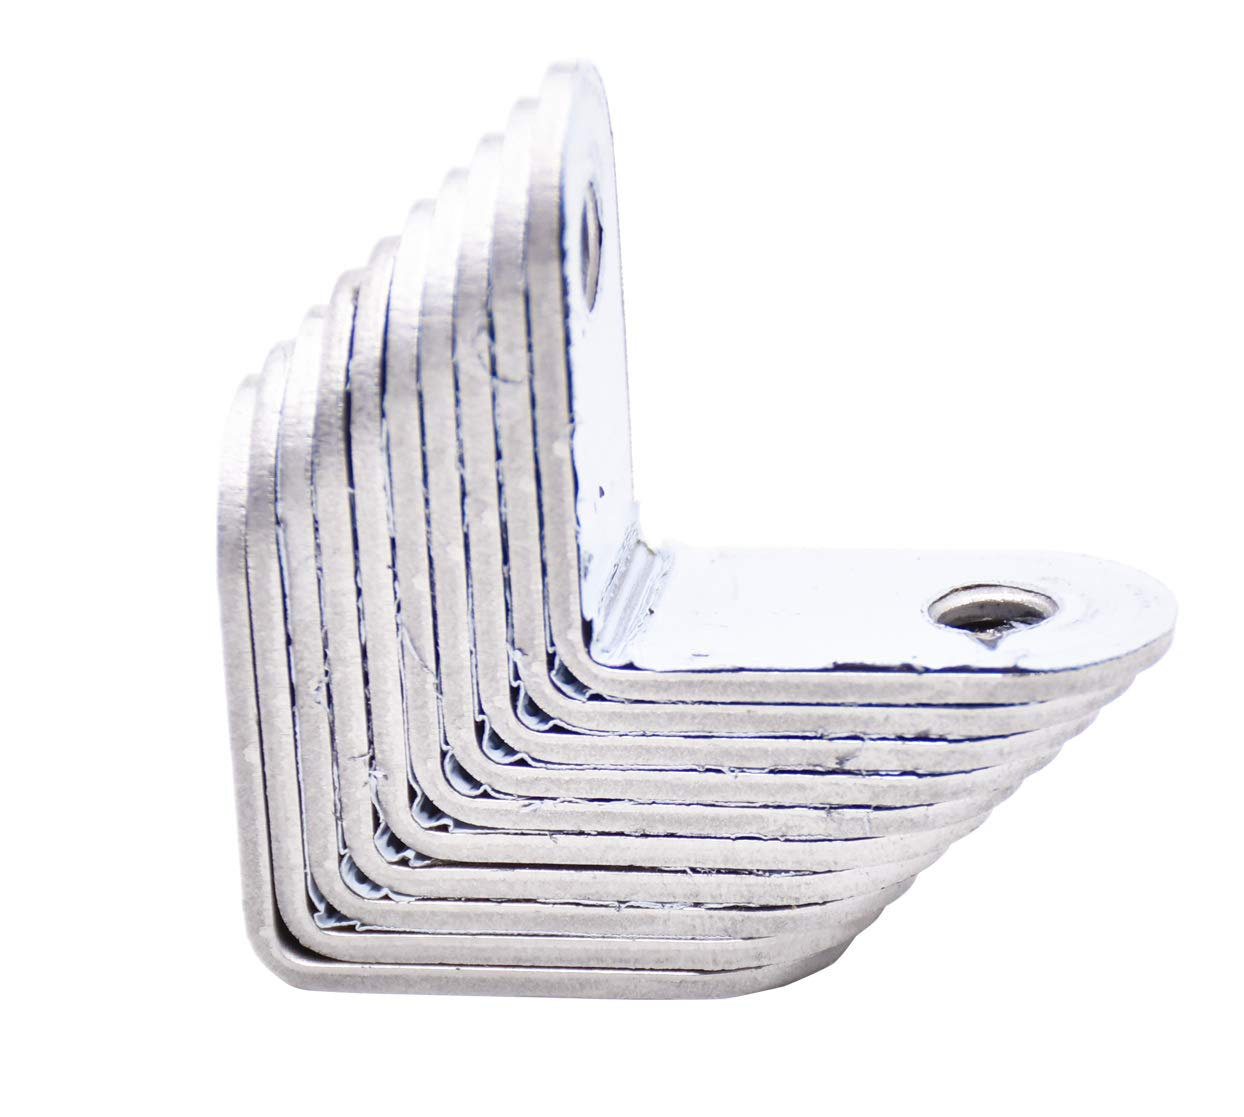 Corner Braces 10 Pcs ,L Shaped Bracket Stainless Steel Right Angle Bracket Fastener,20 Pieces Screws Included 20 x 20 mm